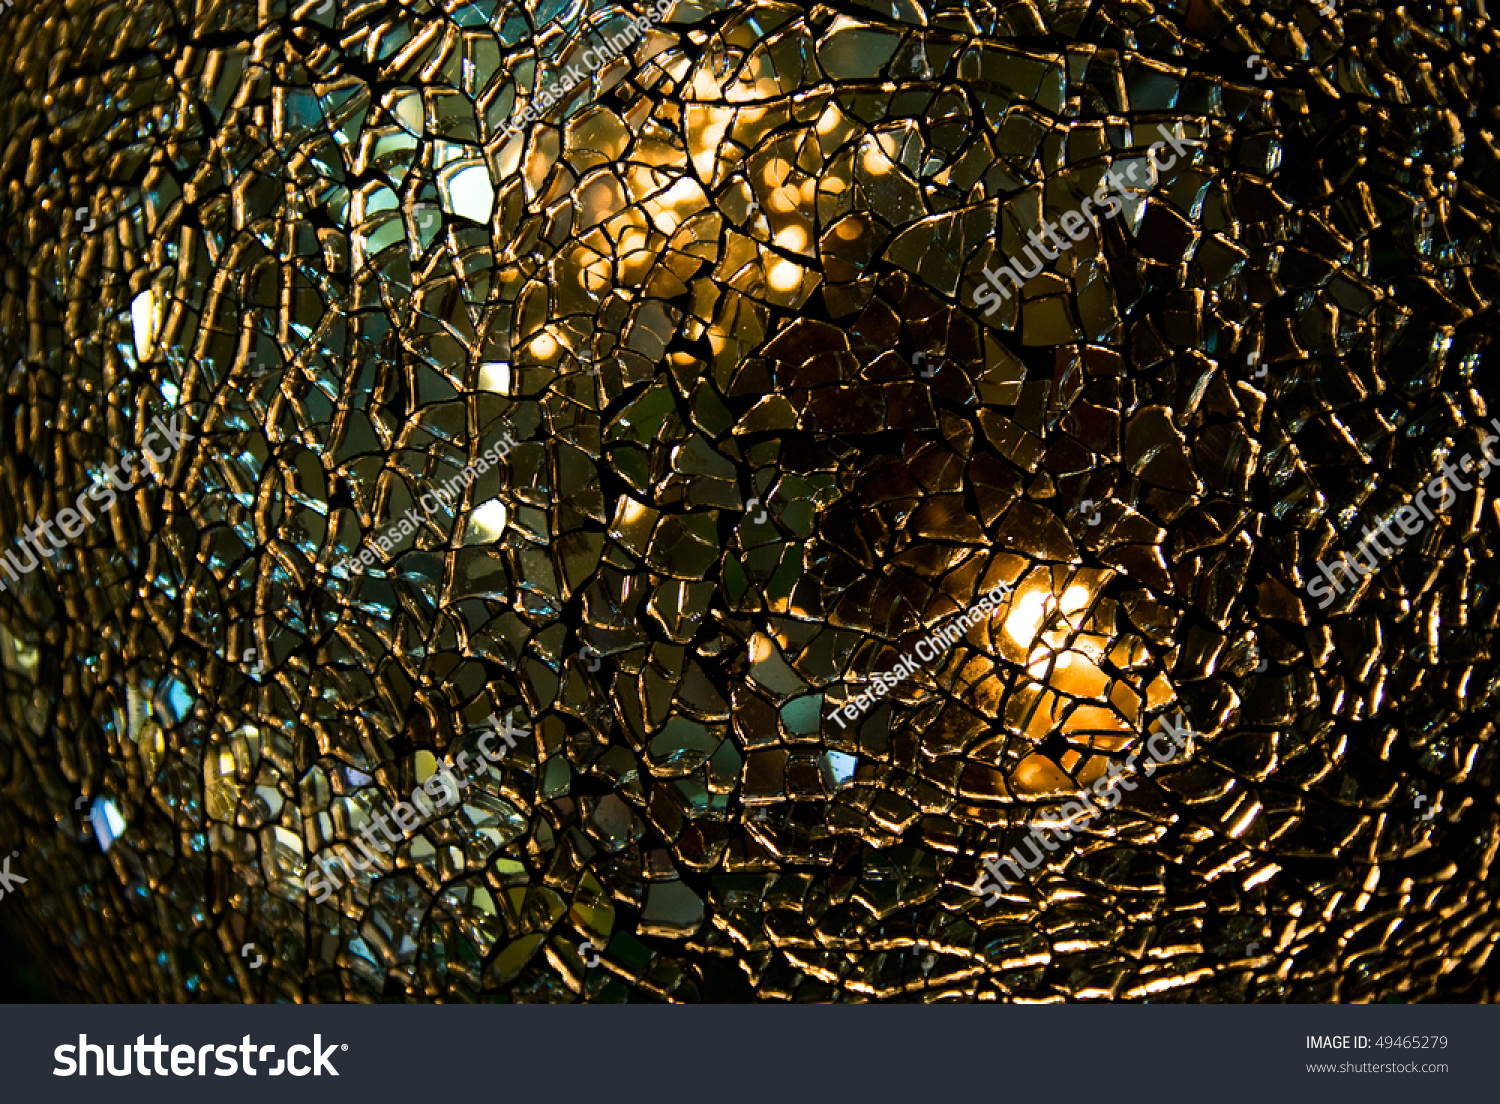 Shattered Glass Ball Texture Crackles Visible Stock Photo ...